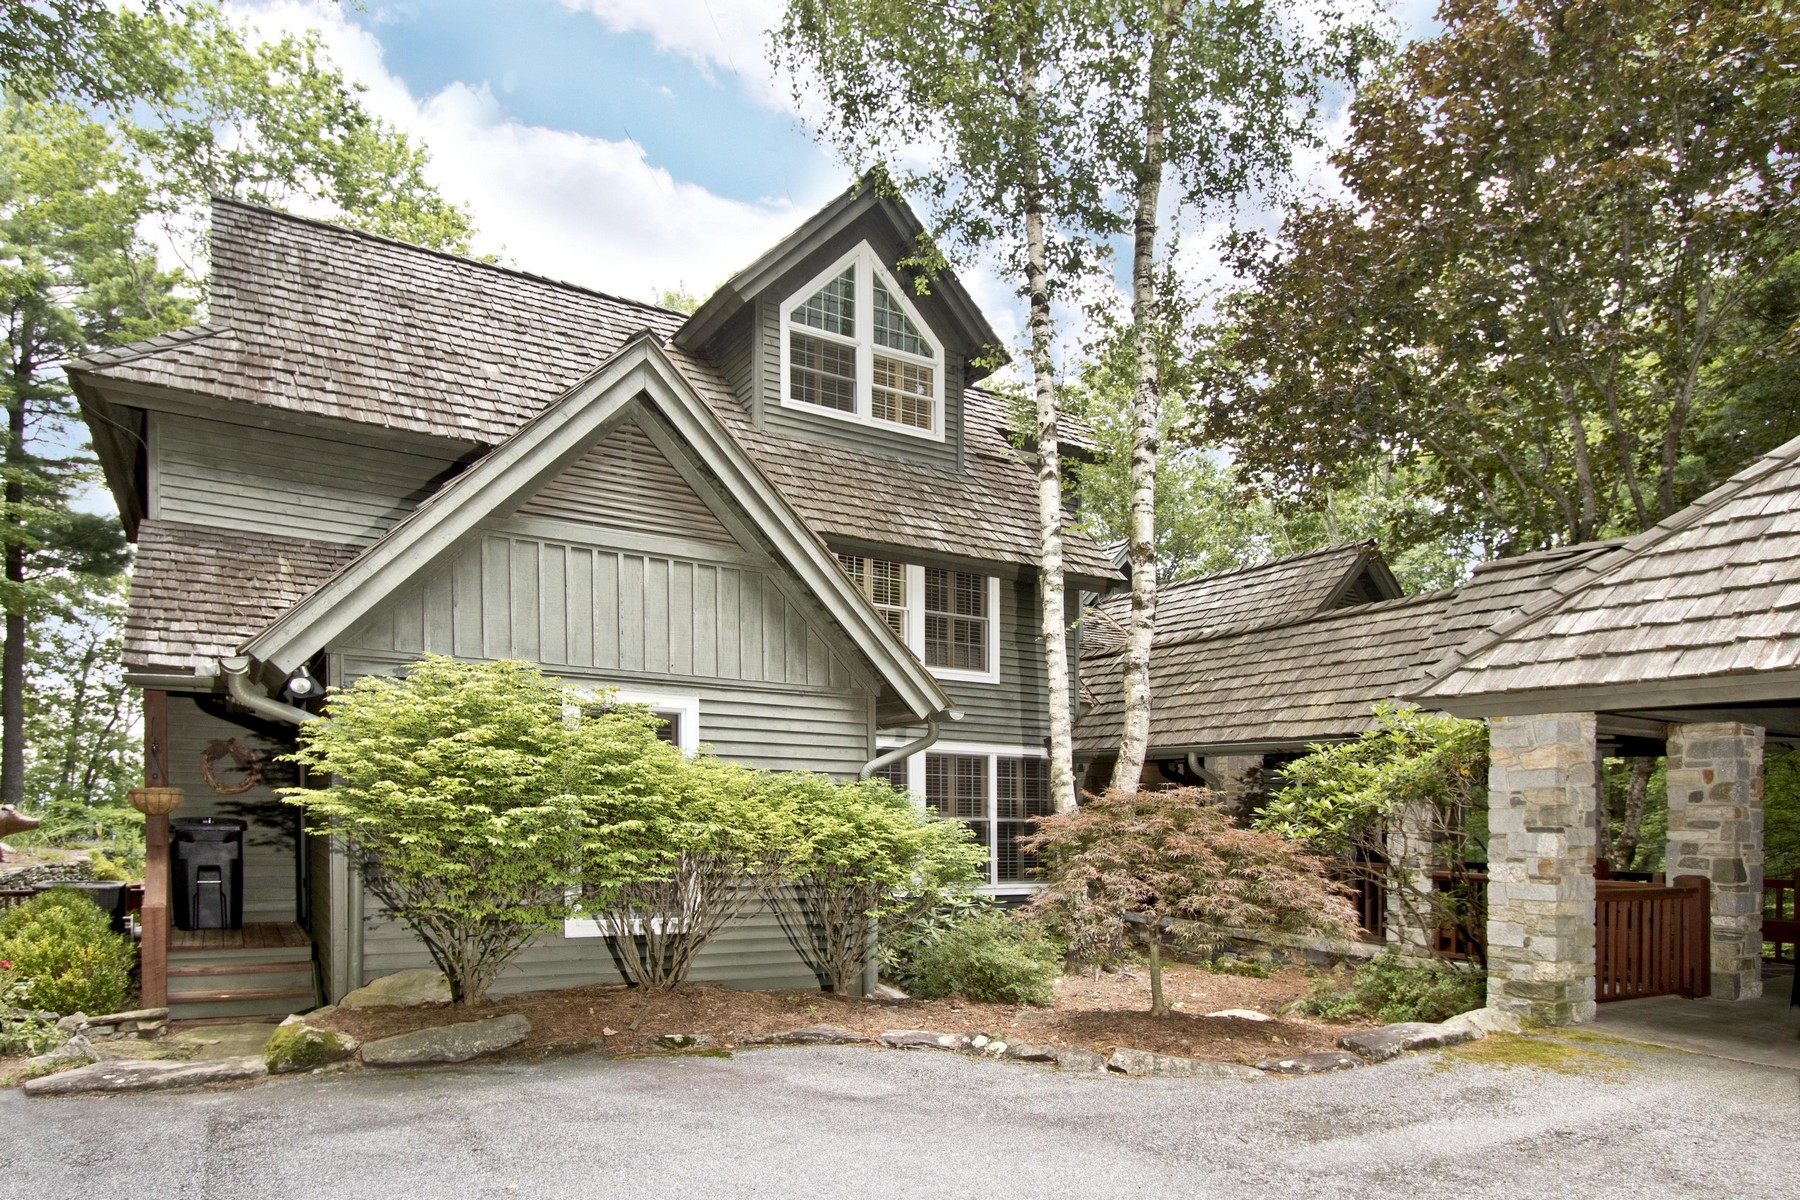 Single Family Homes for Active at 105 Old Cove Road Highlands NC 105 Old Cove Road Highlands, North Carolina 28741 United States